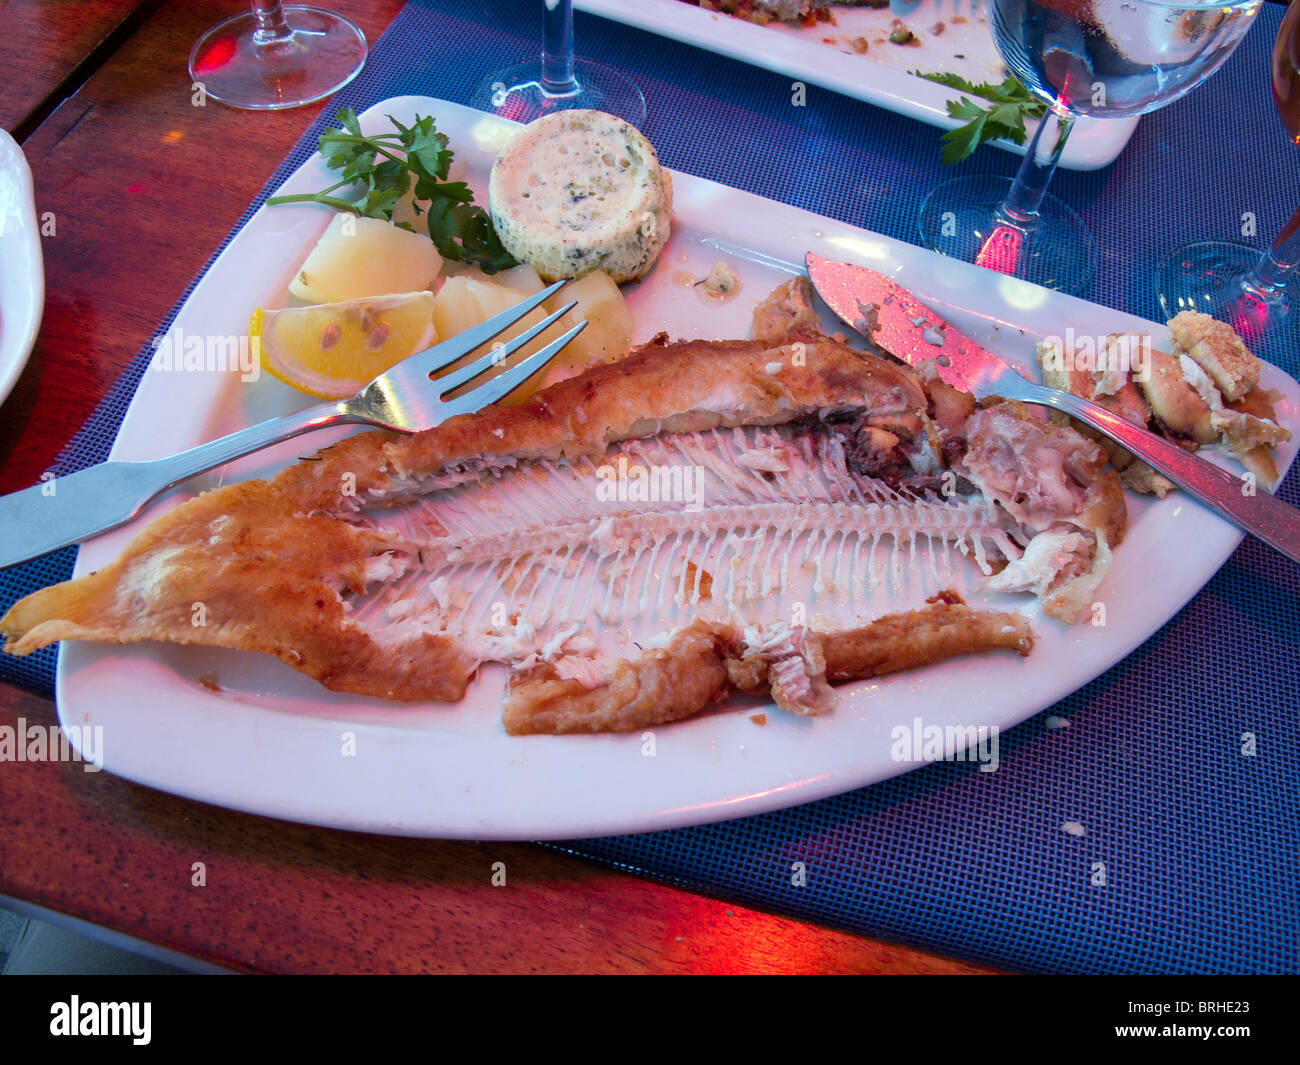 An eaten meal of Sole Grille with garnish and knife and fork at a French restaurant - Stock Image